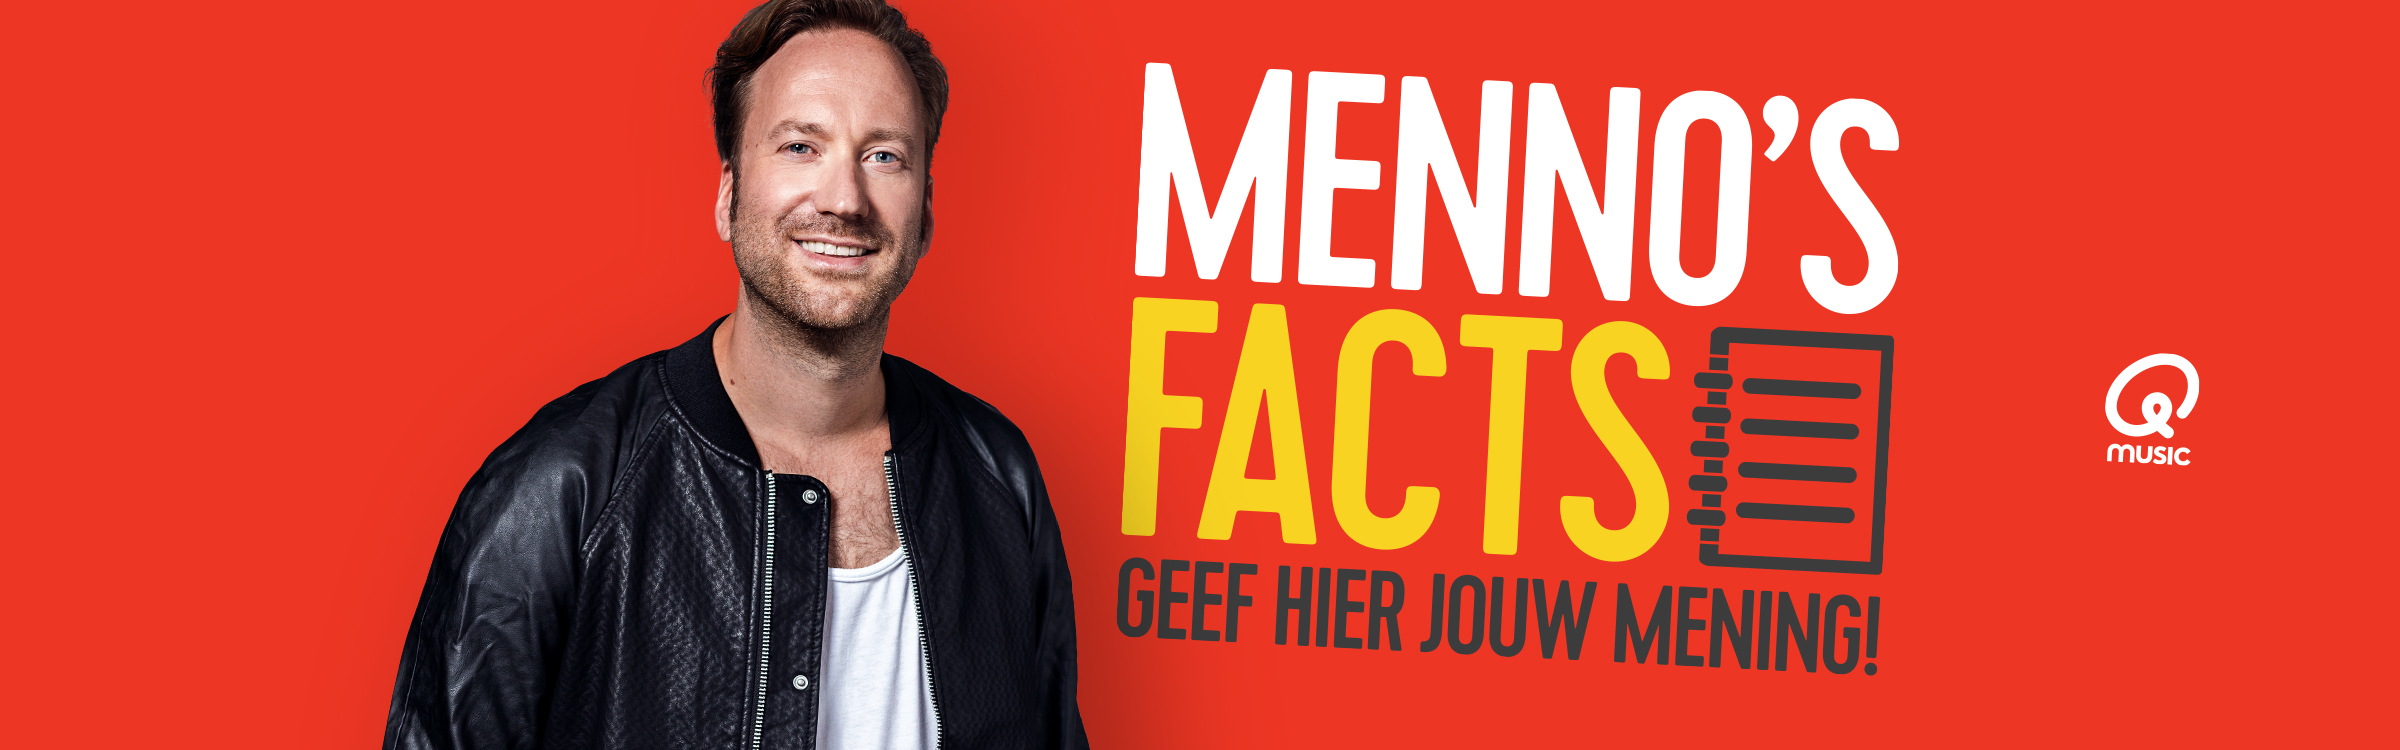 Qmusic actionheader mennosfacts17